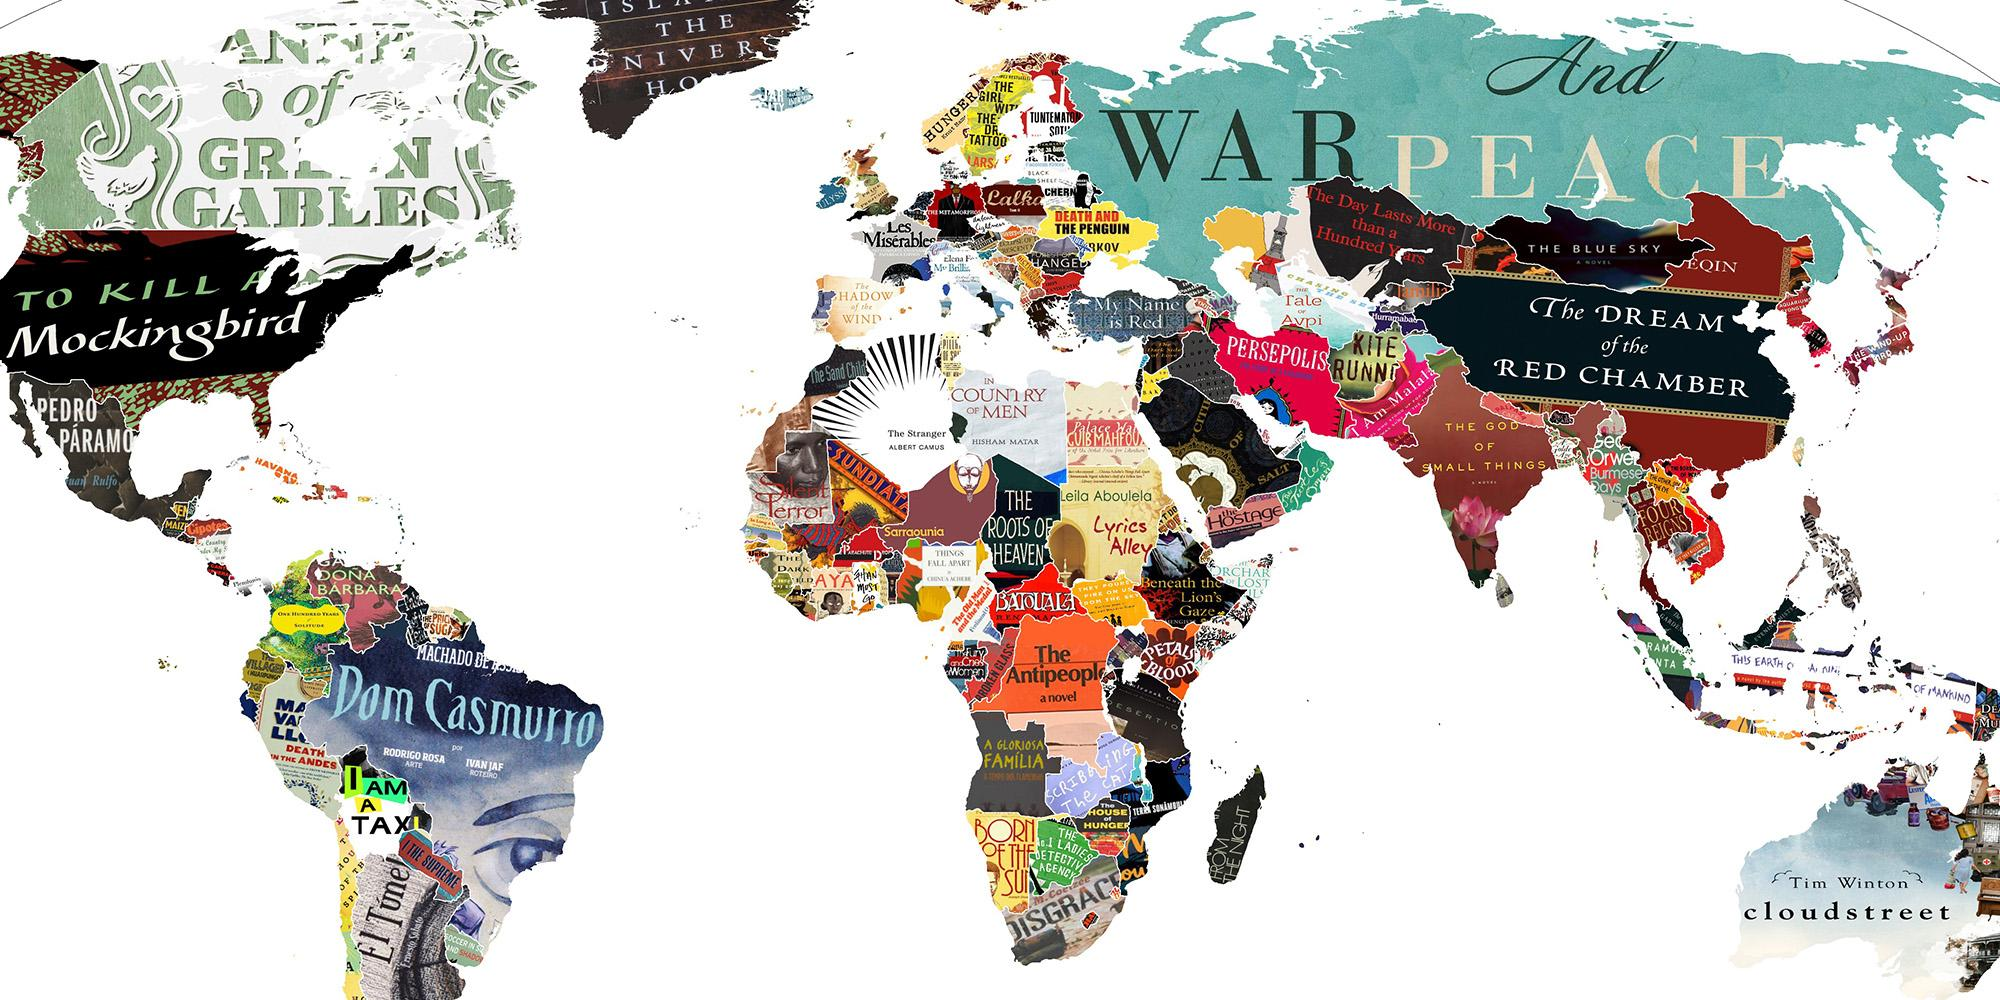 Literature Map Of The World.This Literature Map Of The World Is Simply Brilliant Indy100